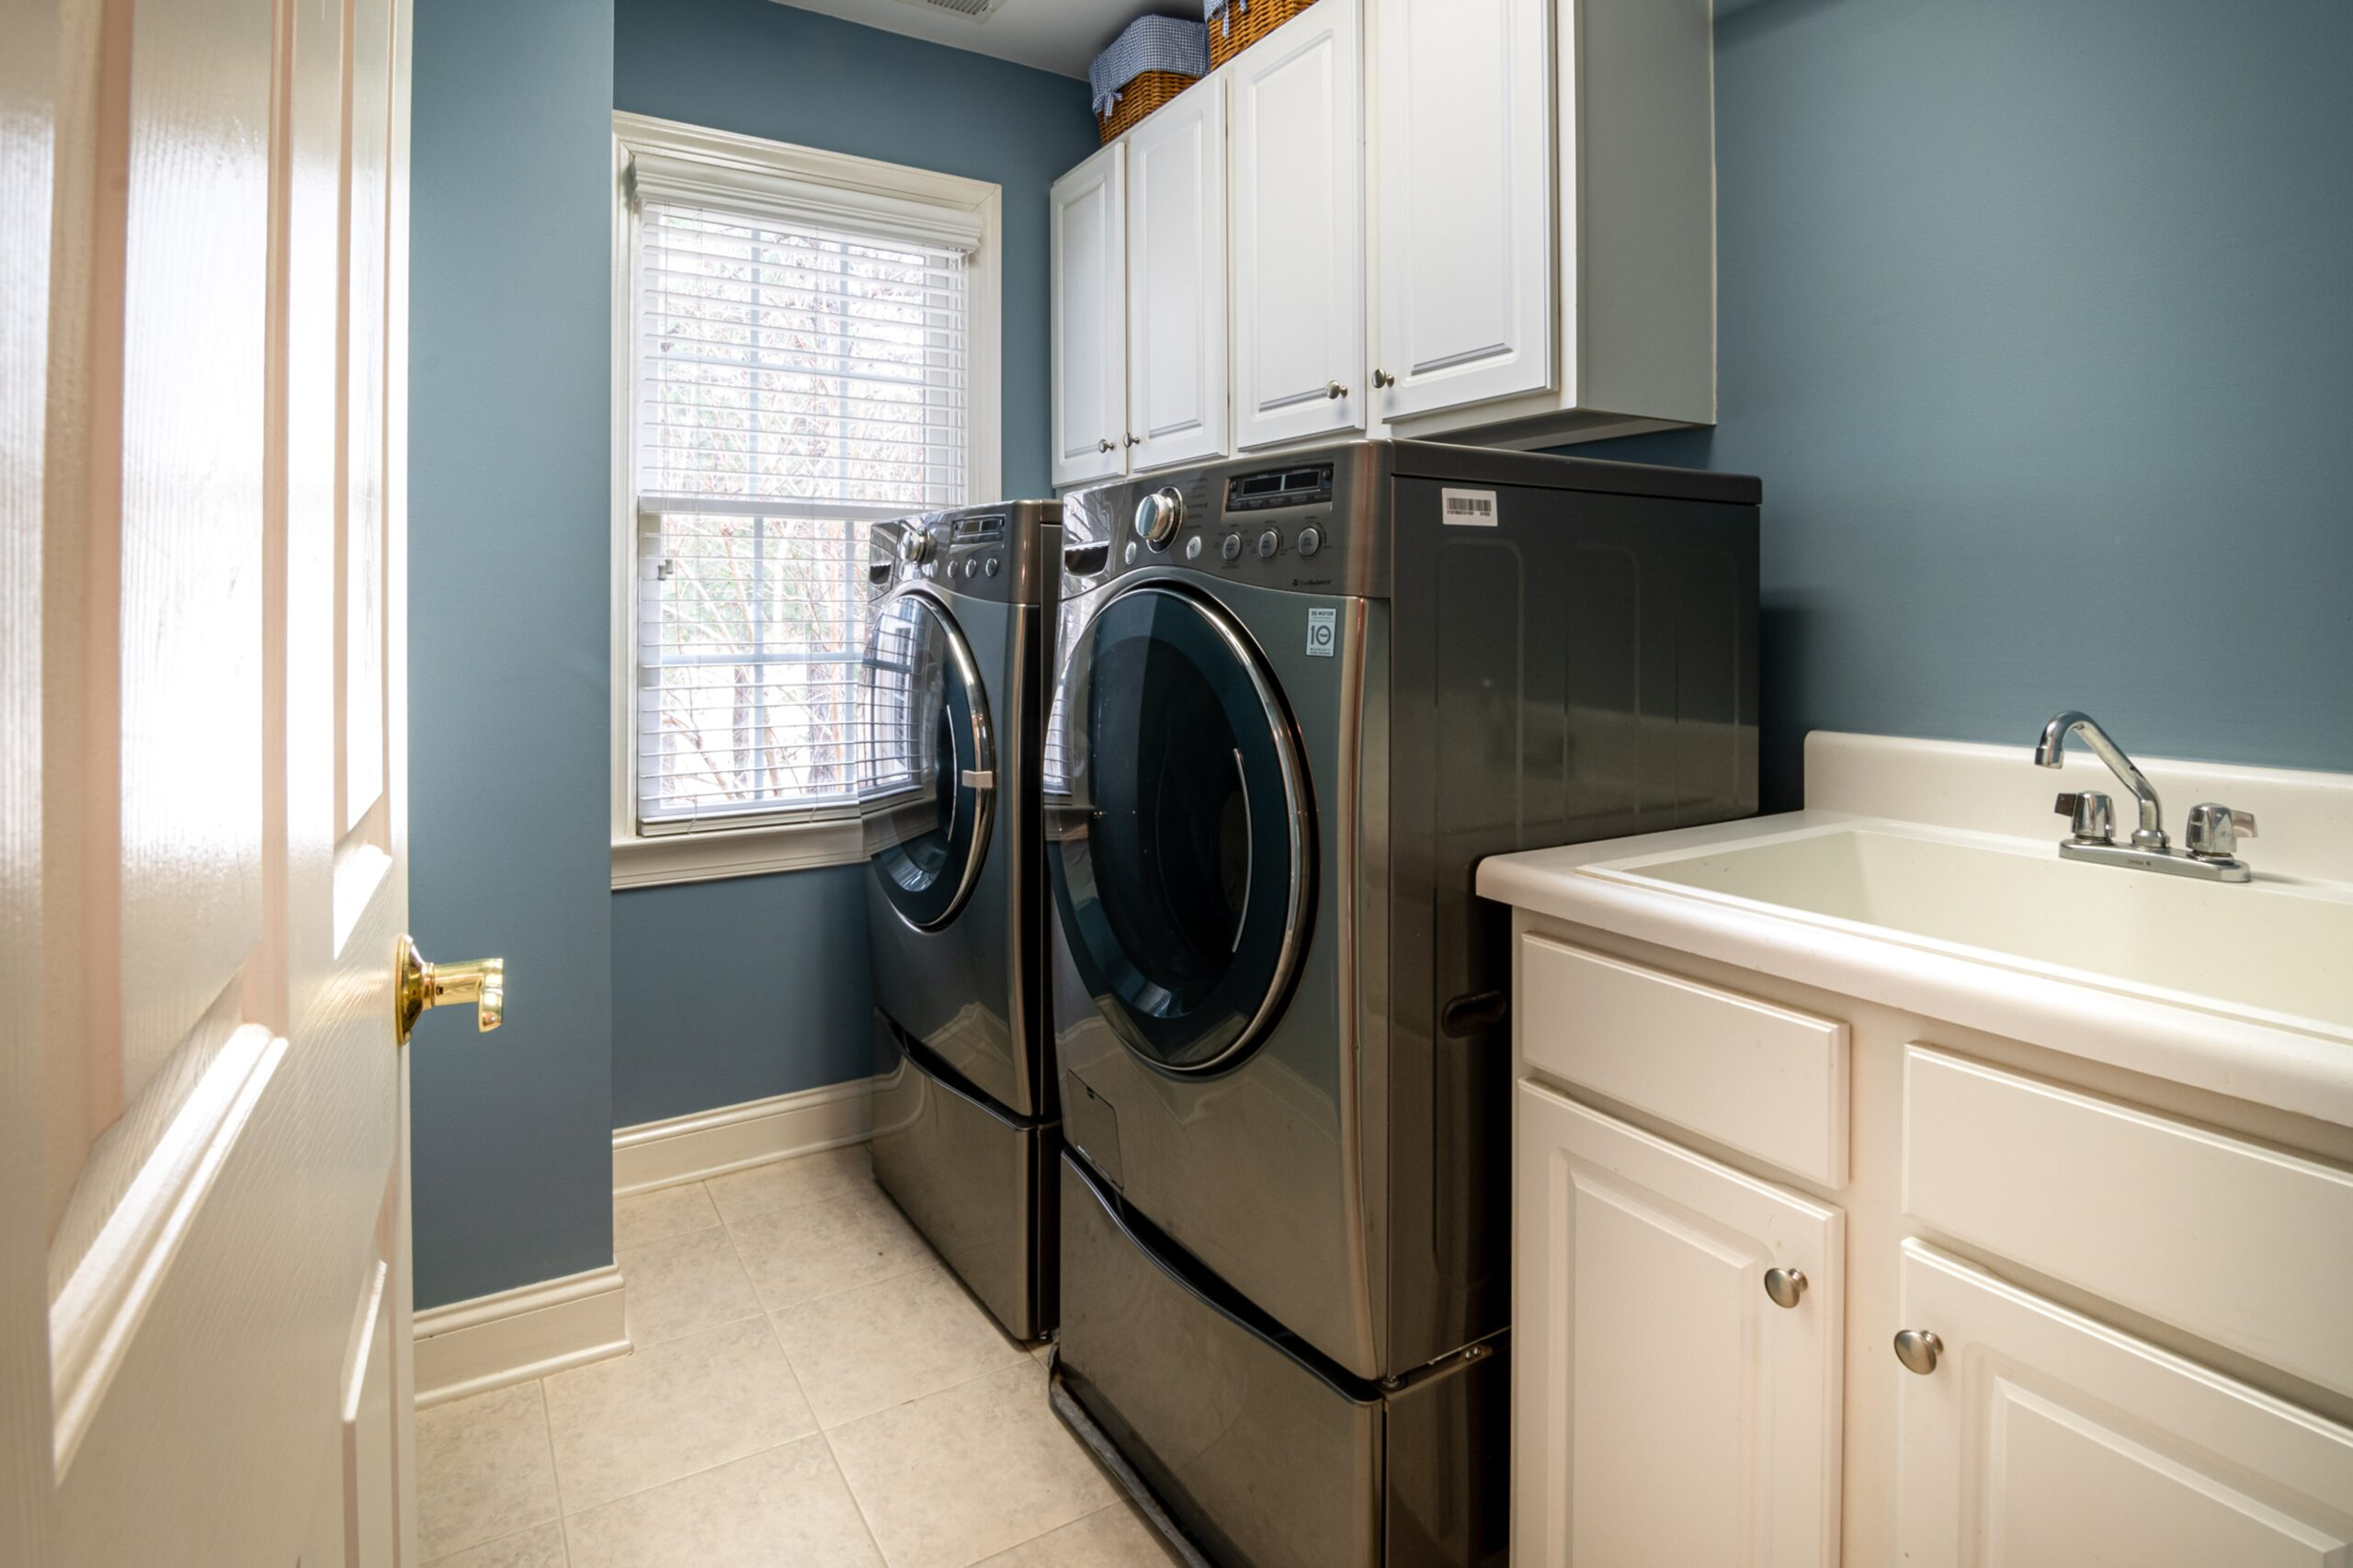 Ways to Save Money While Doing Laundry